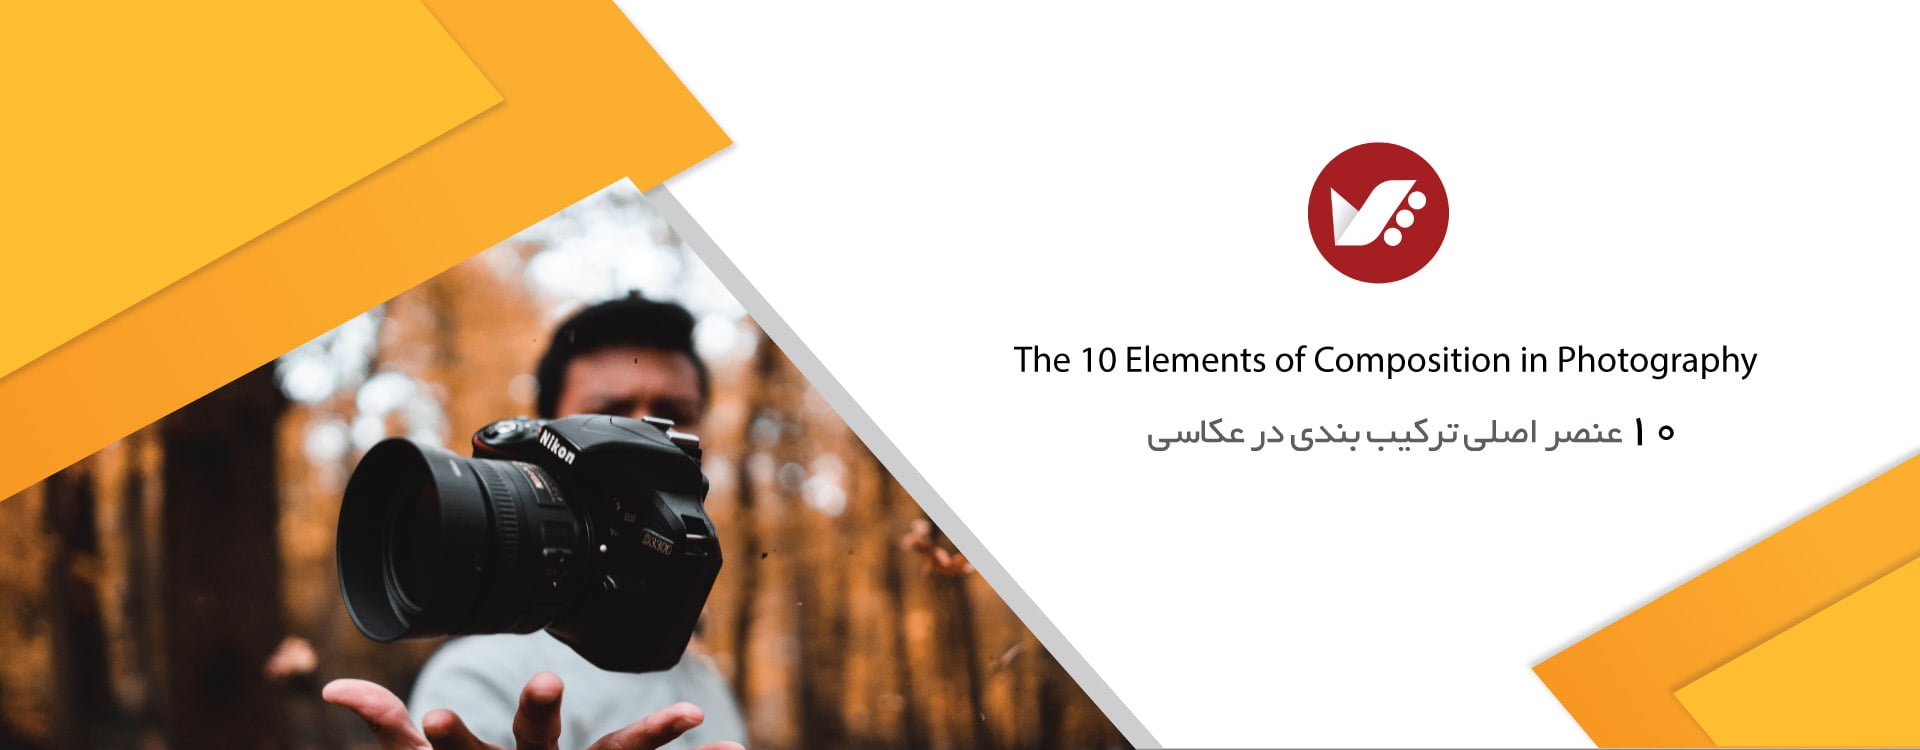 Elements of Composition in Photography 2 - عناصر ترکیب بندی در عکاسی